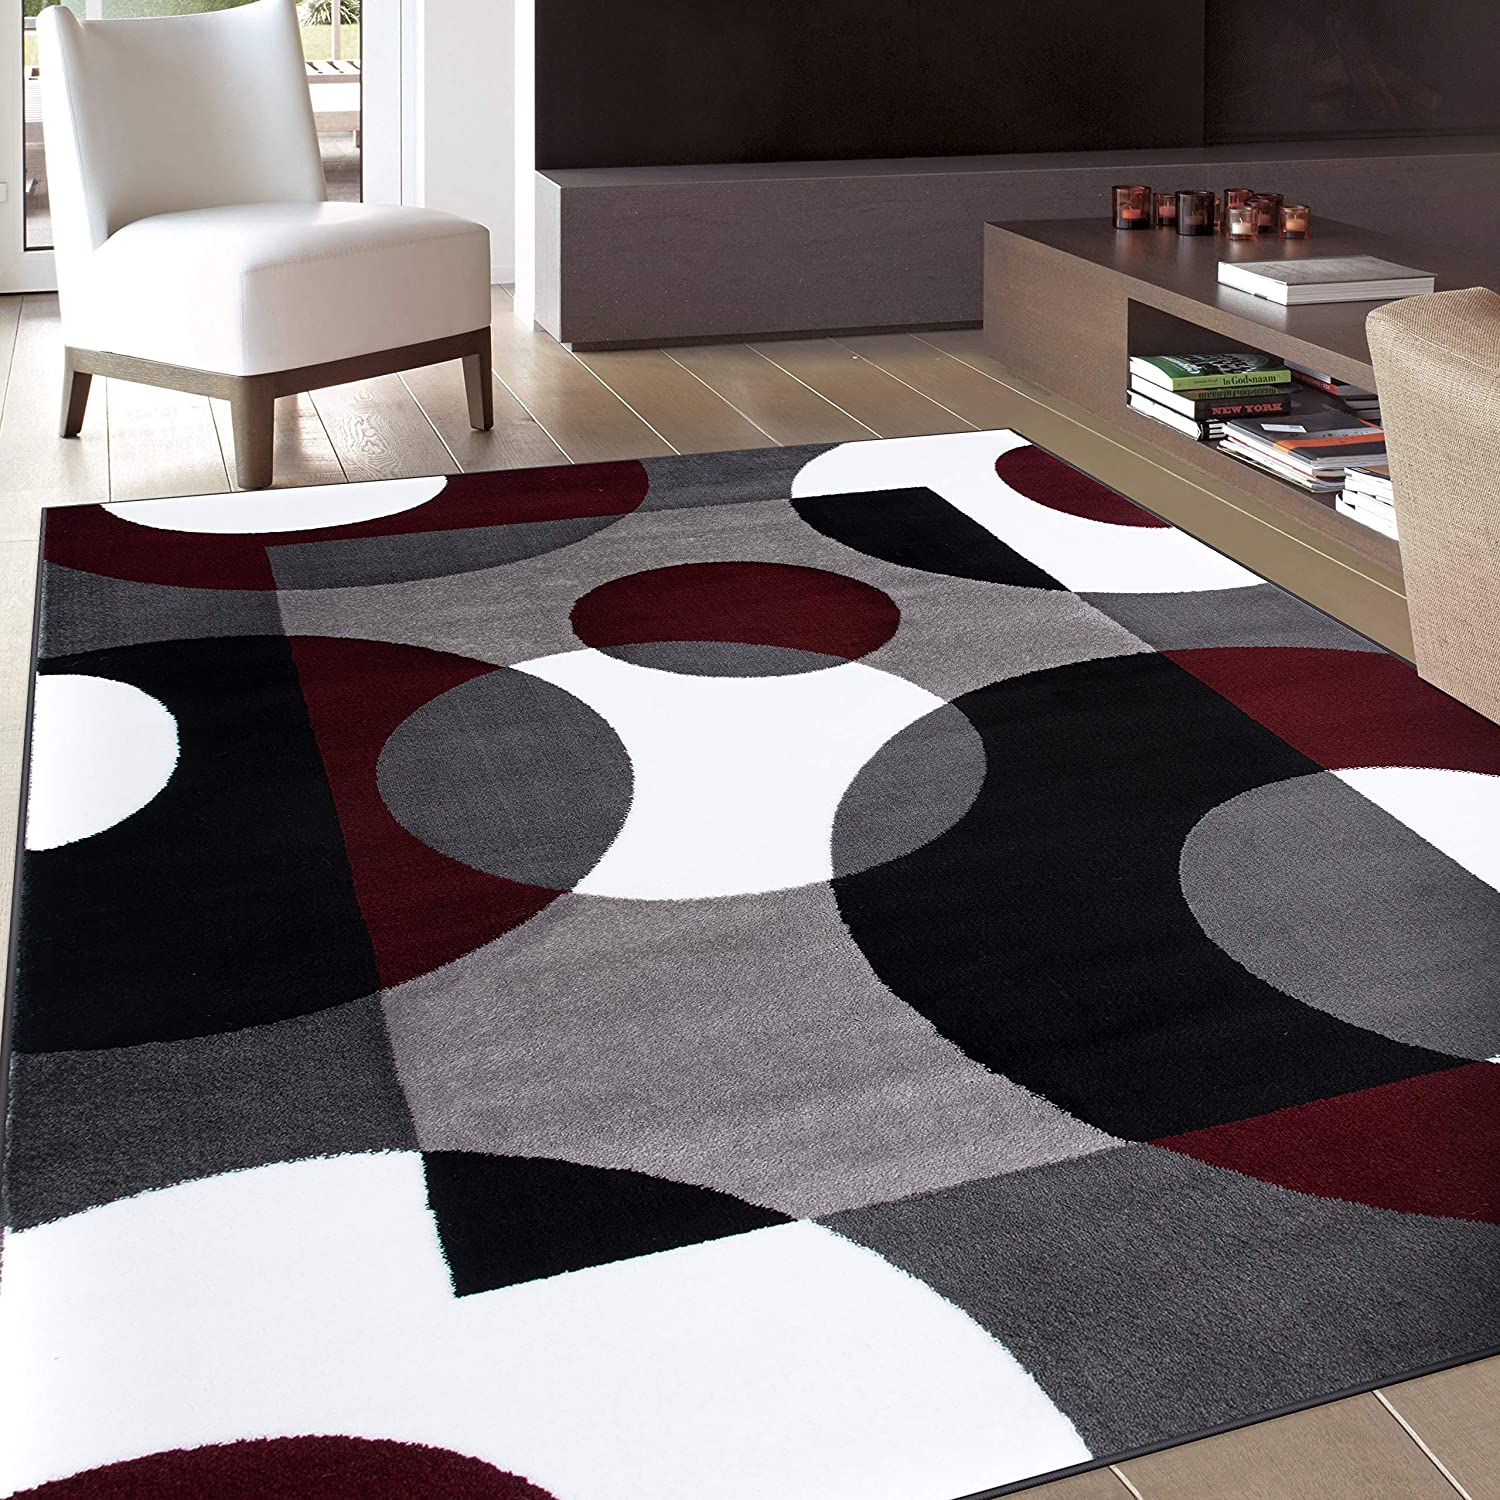 Modern Circles Burgundy Area Rug 7 10 X 10 2 Furniture Decor